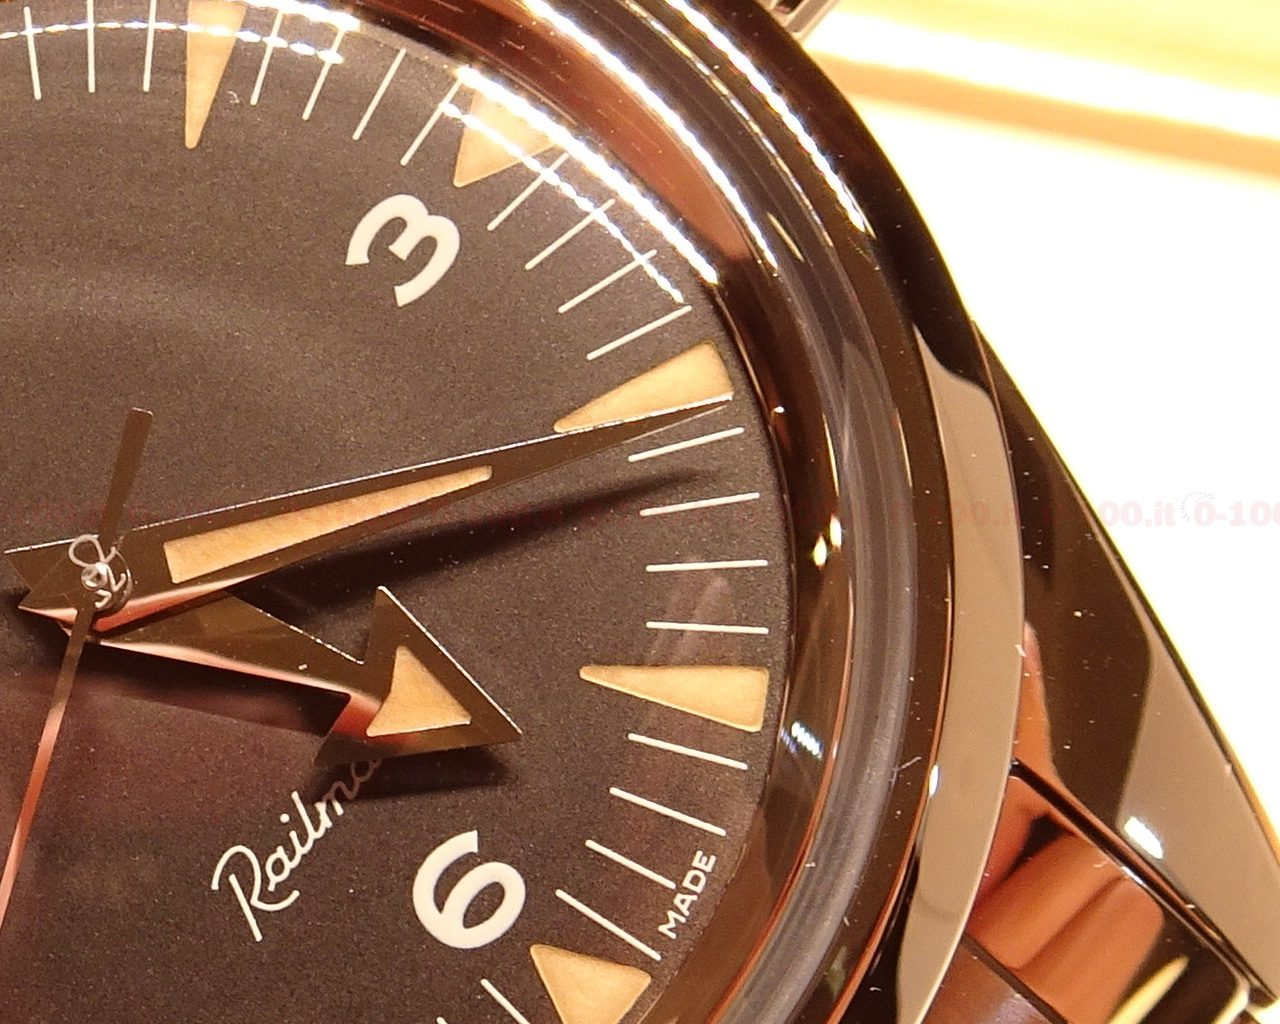 Omega Railmaster -60th Anniversary Limited Edition - Master Chronometer 38 mm_0-1005